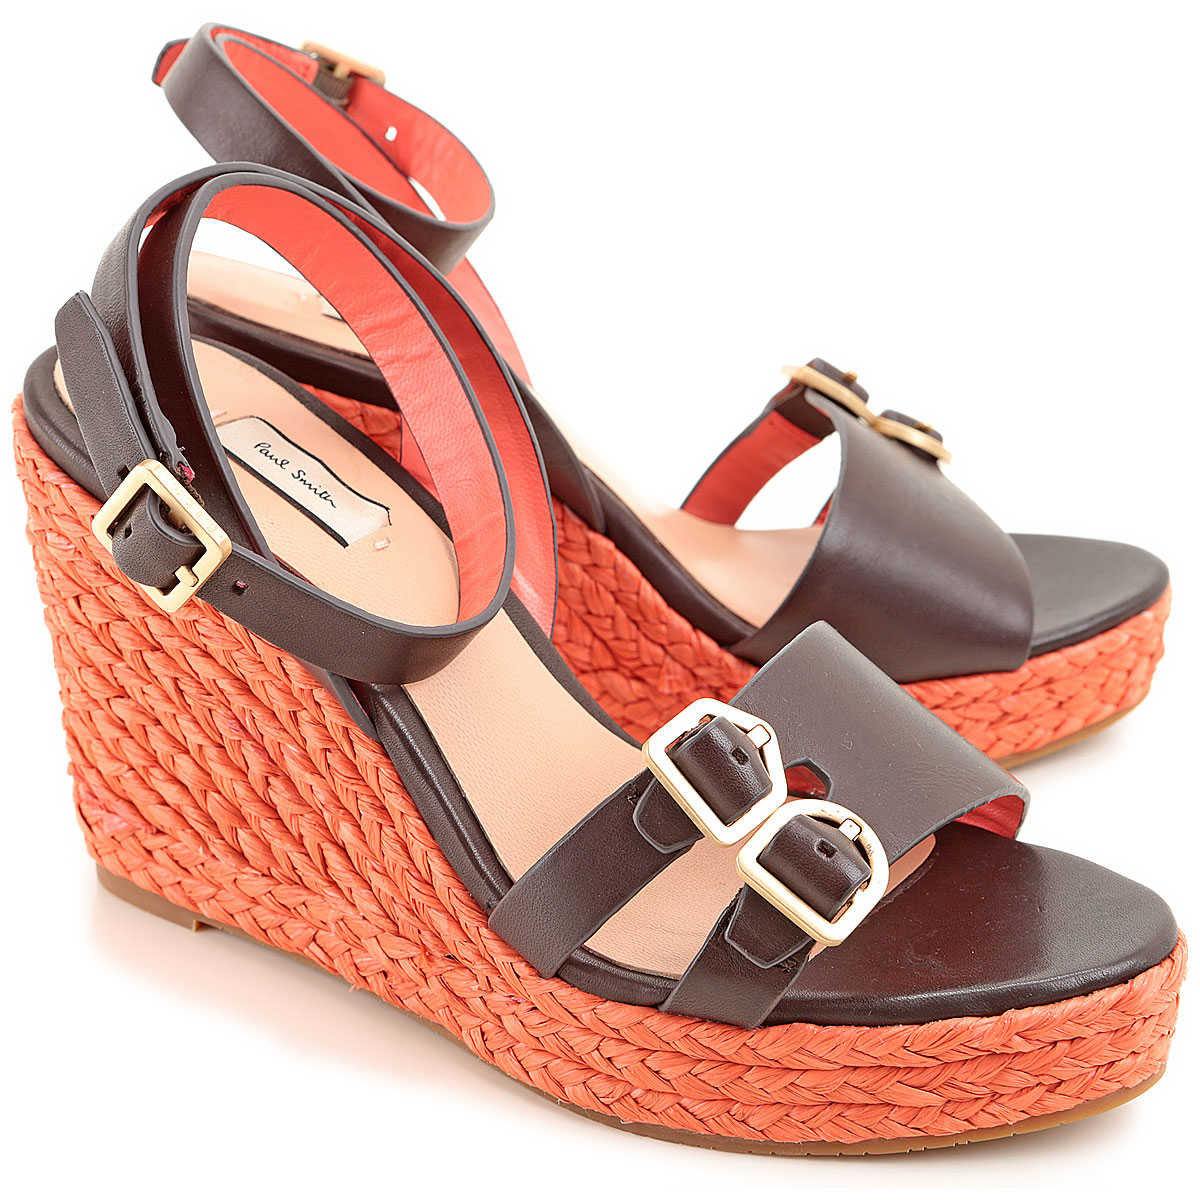 Paul Smith Wedges for Women On Sale